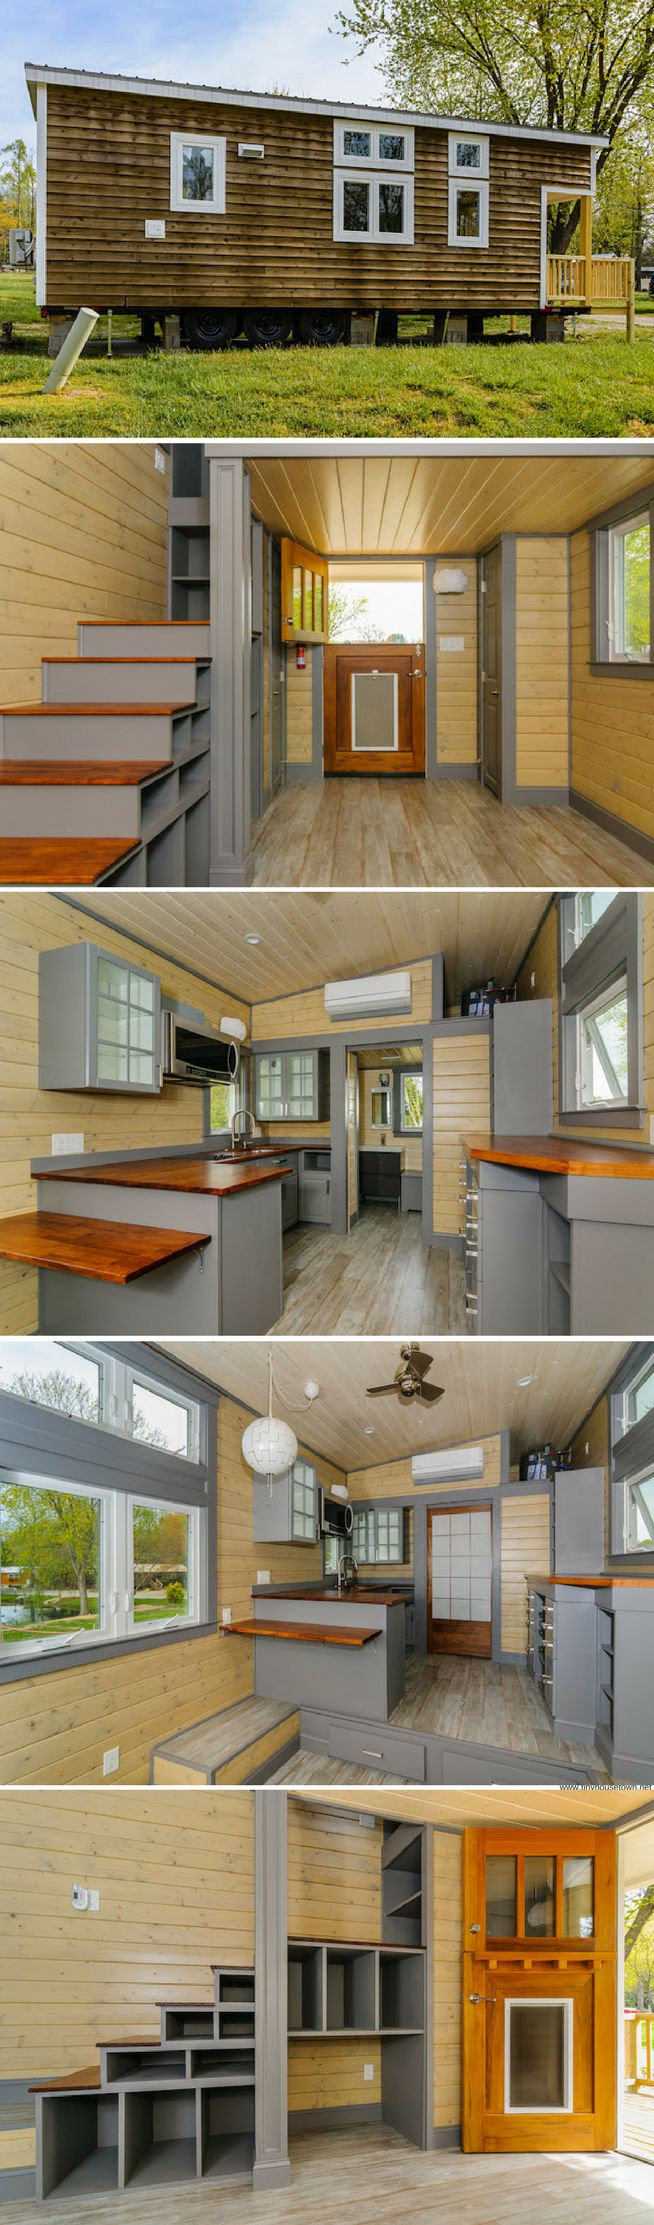 The Squibb: a 300 sq ft tiny house from Wishbone Tiny Homes